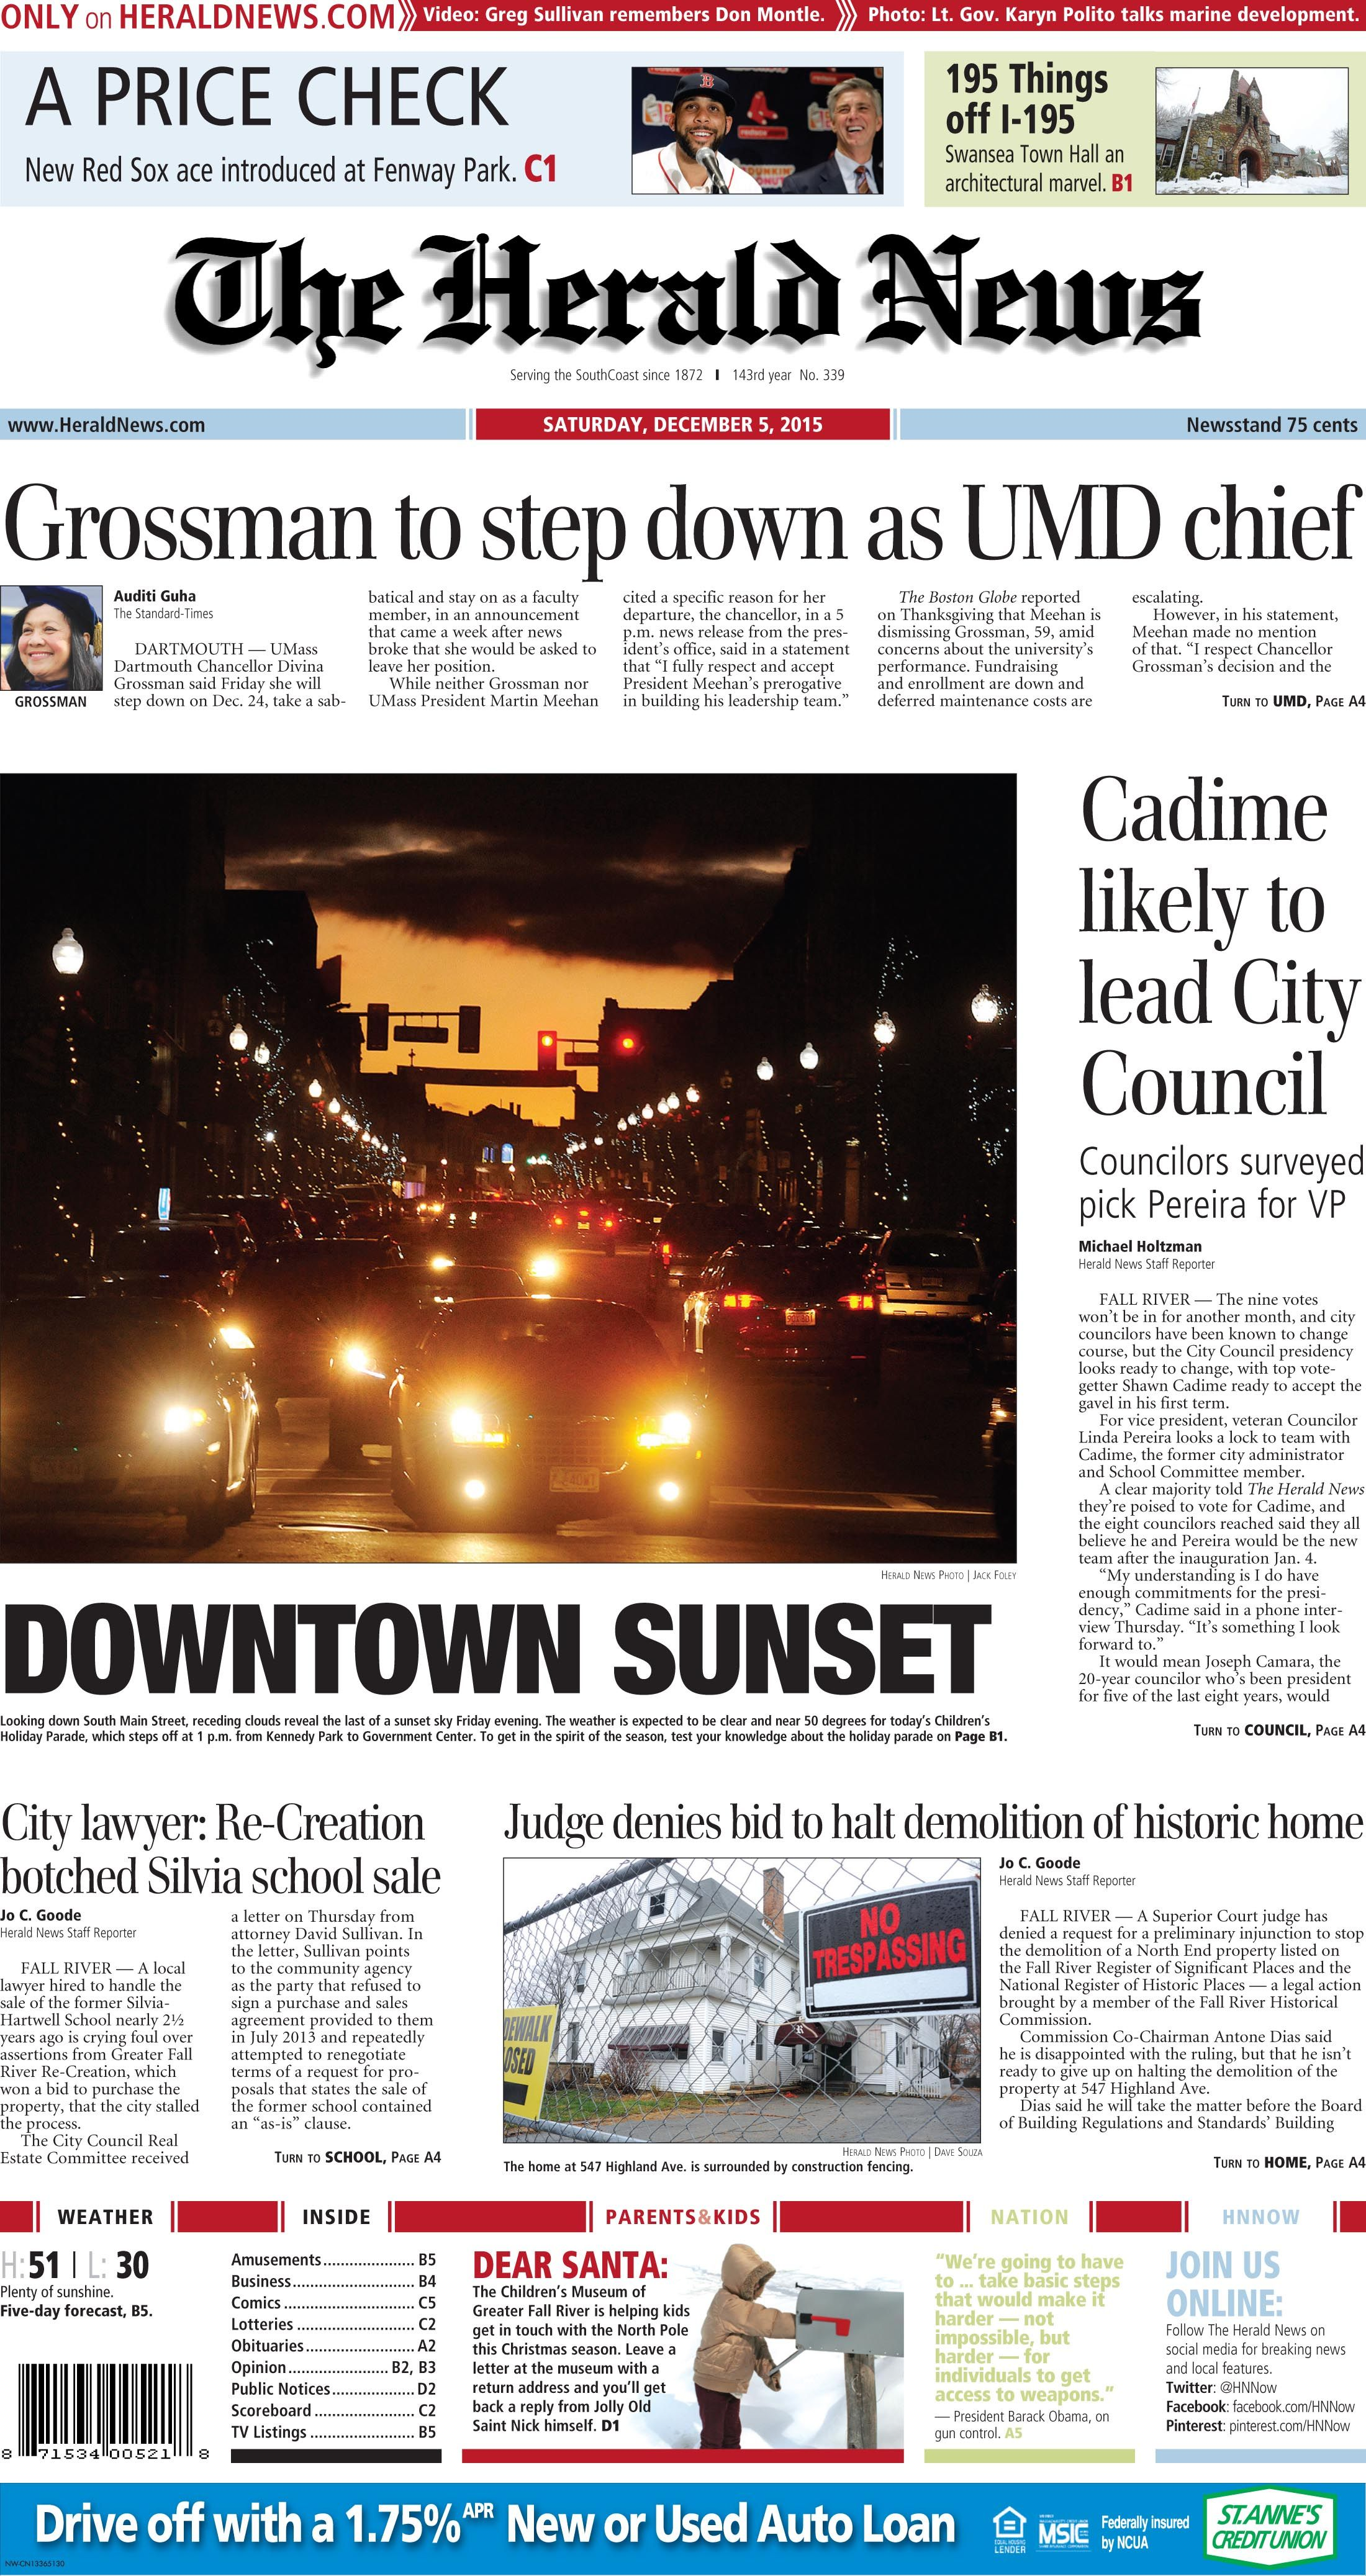 The front page of The Herald News for Saturday, Dec. 5, 2015.